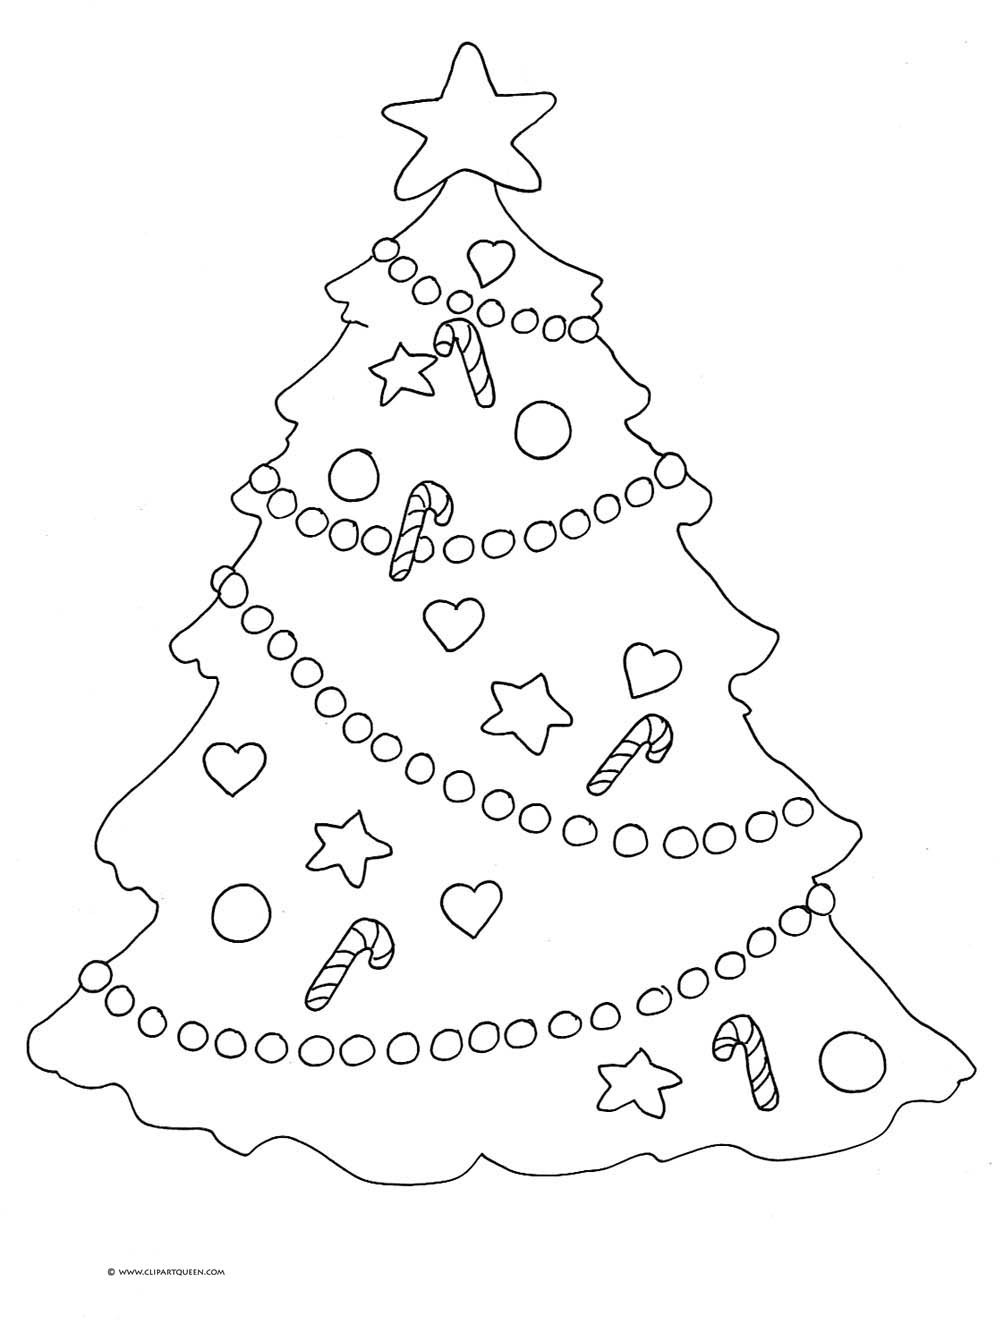 Christmas Tree Step By Step Drawing at GetDrawings.com | Free for ...